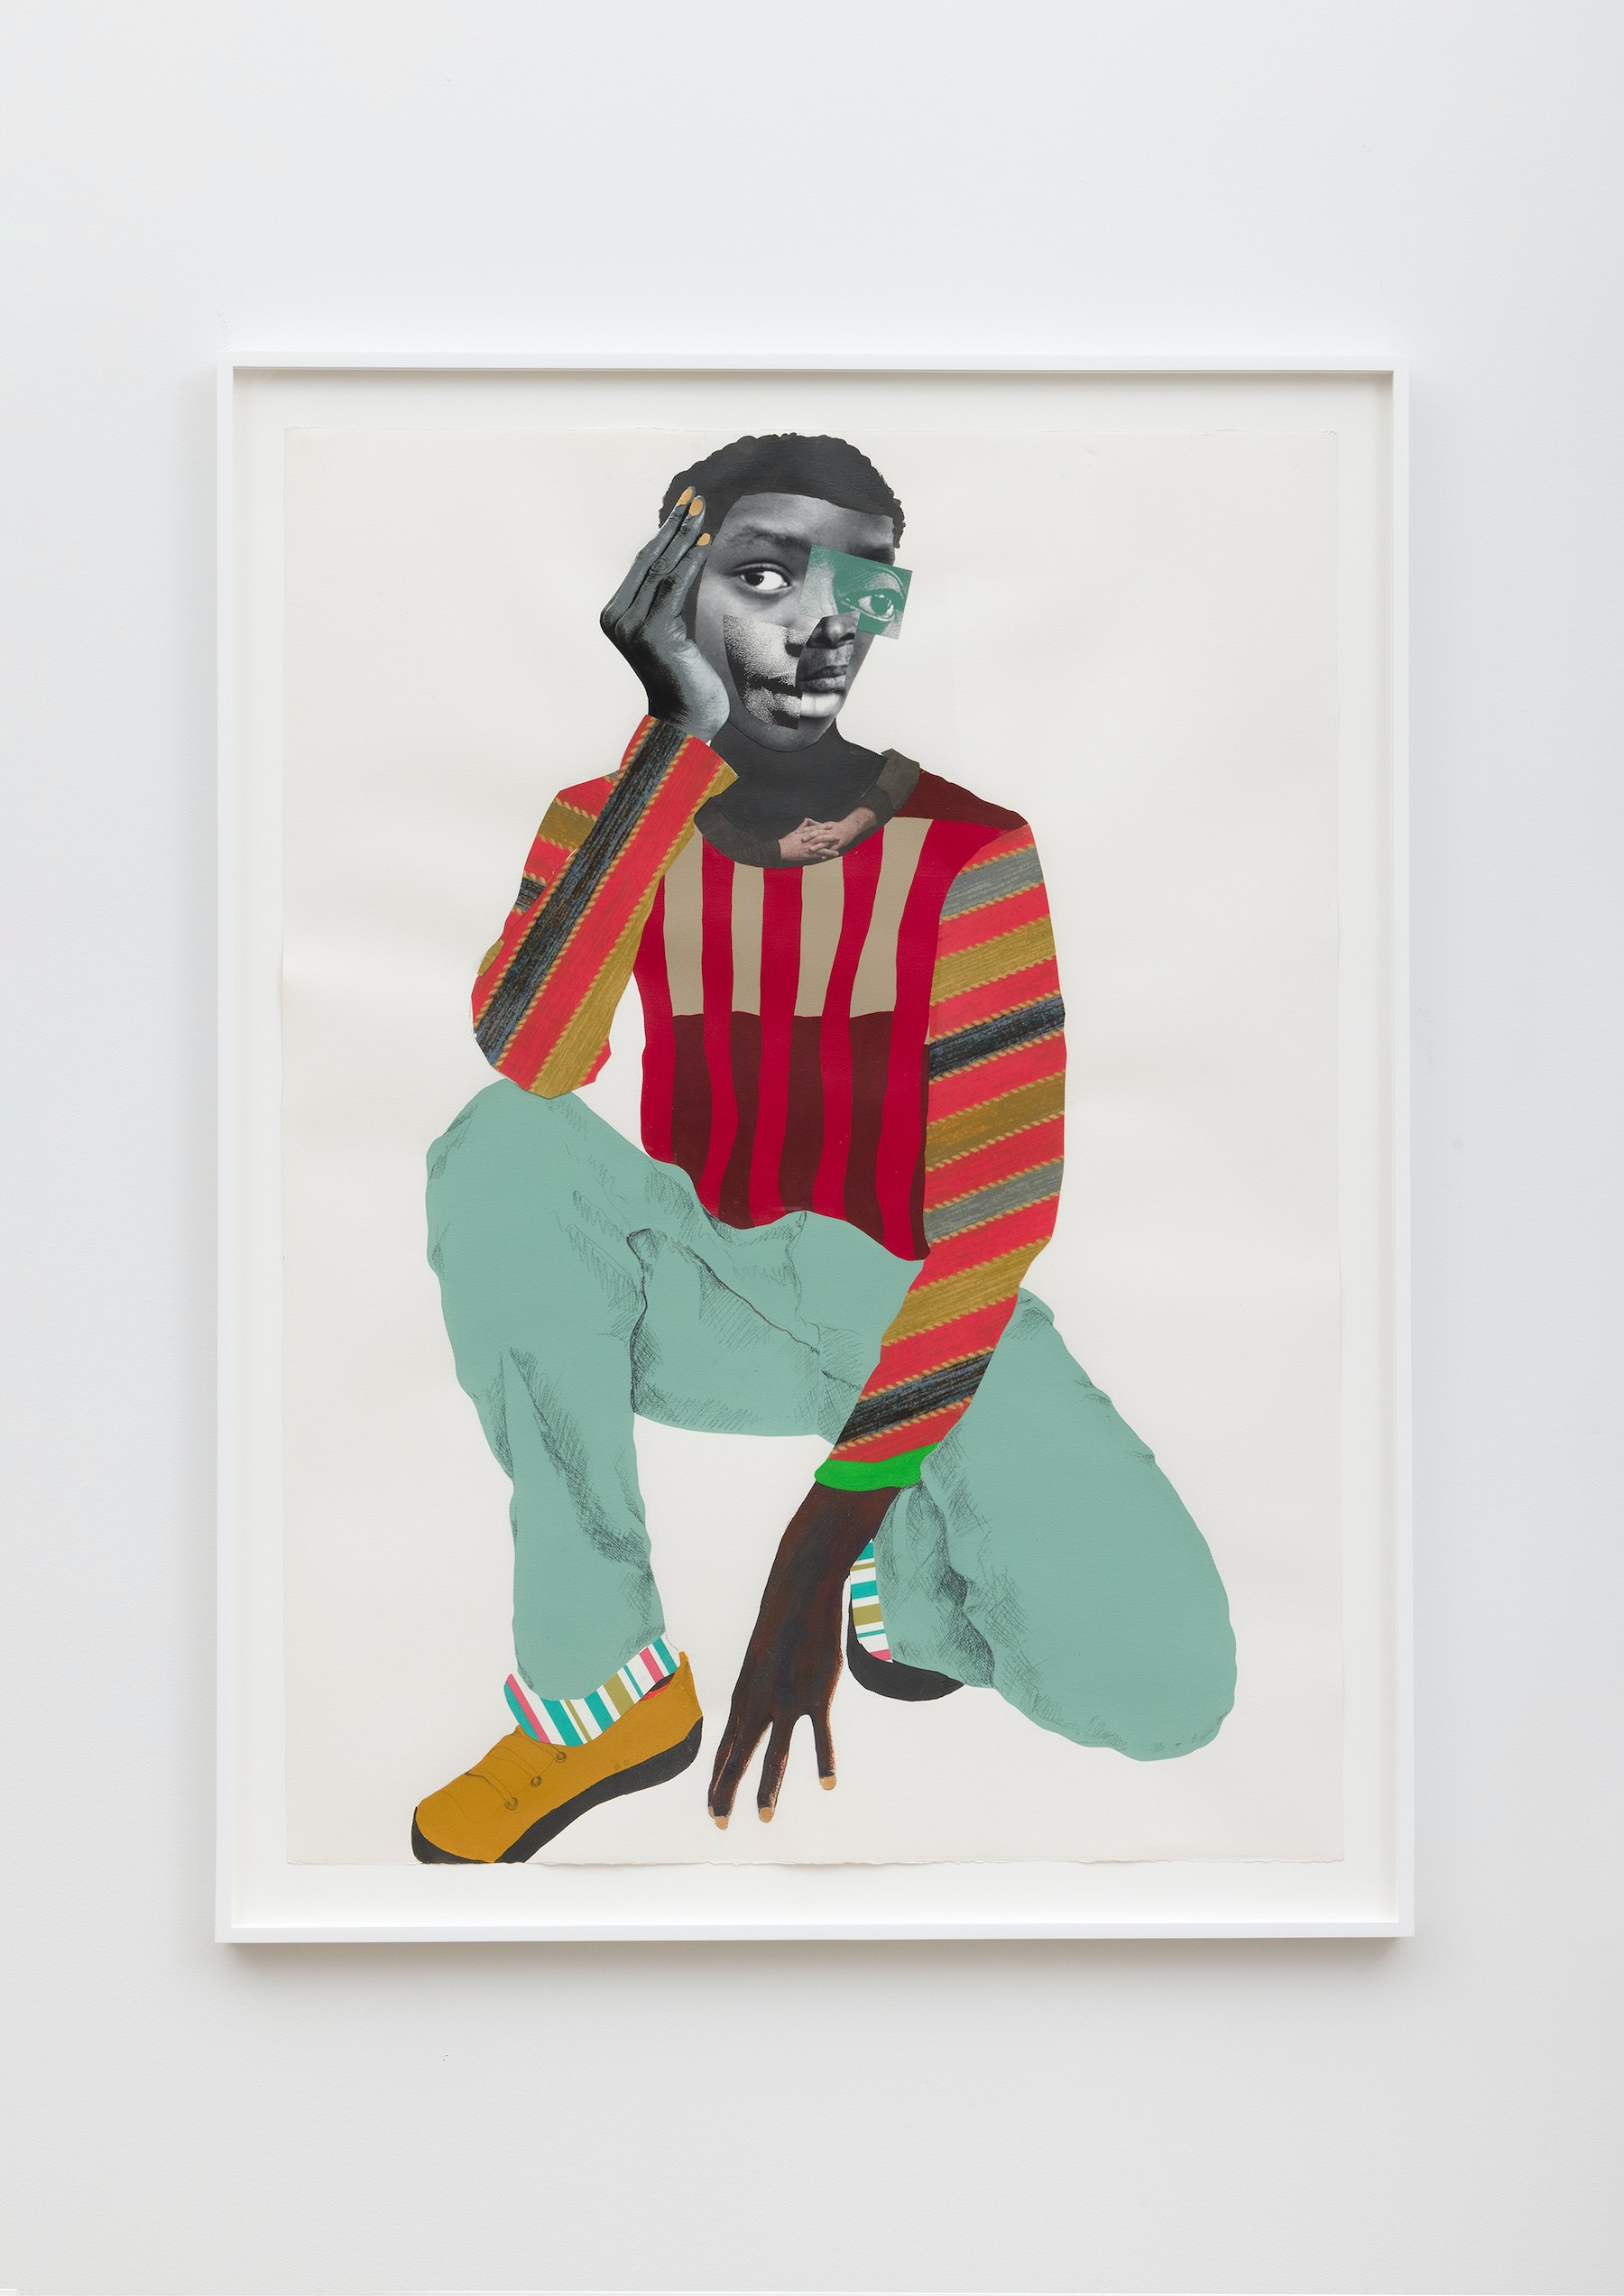 """Deborah Roberts """"The Inconvenient citizen,"""" 2021 Mixed media collage on paper 52"""" x 38"""" [HxW] (132.08 x 96.52 cm); 56 ³⁄₄"""" x 42 ³⁄₄"""" x 1 ³⁄₄"""" [HxWxD] (144.14 x 108.58 x 4.44 cm) framed Inventory #ROB460 Courtesy of the artist and Vielmetter Los Angeles Photo credit: Jeff McLane"""